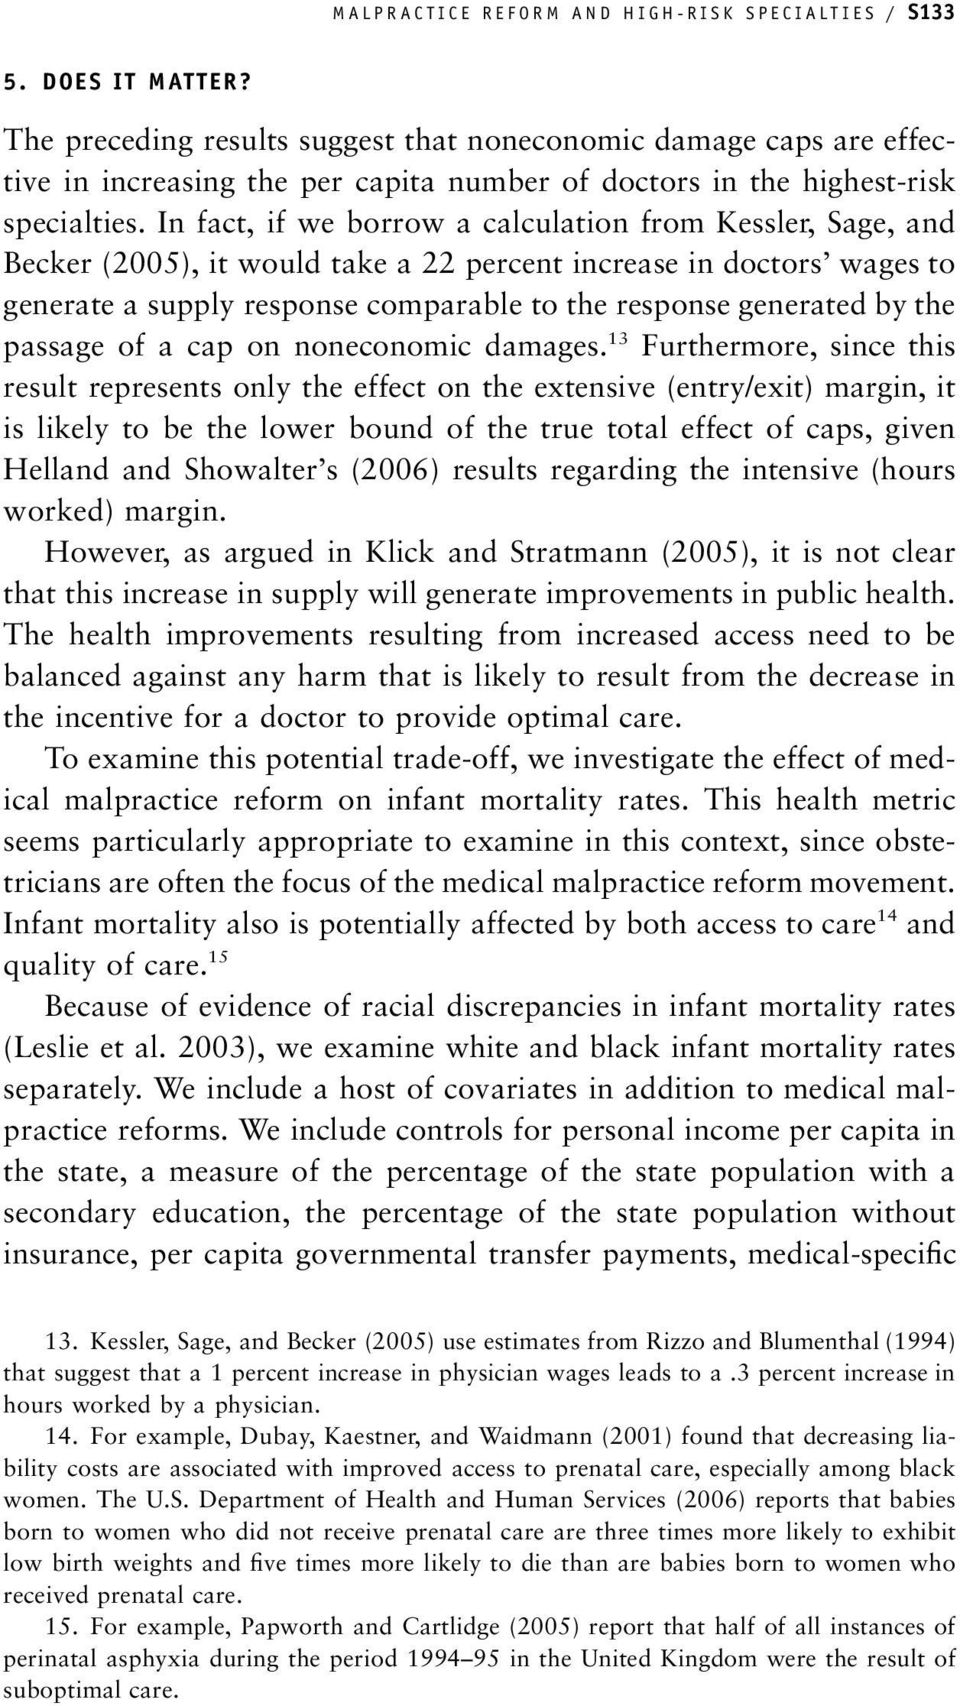 In fact, if we borrow a calculation from Kessler, Sage, and Becker (2005), it would take a 22 percent increase in doctors wages to generate a supply response comparable to the response generated by